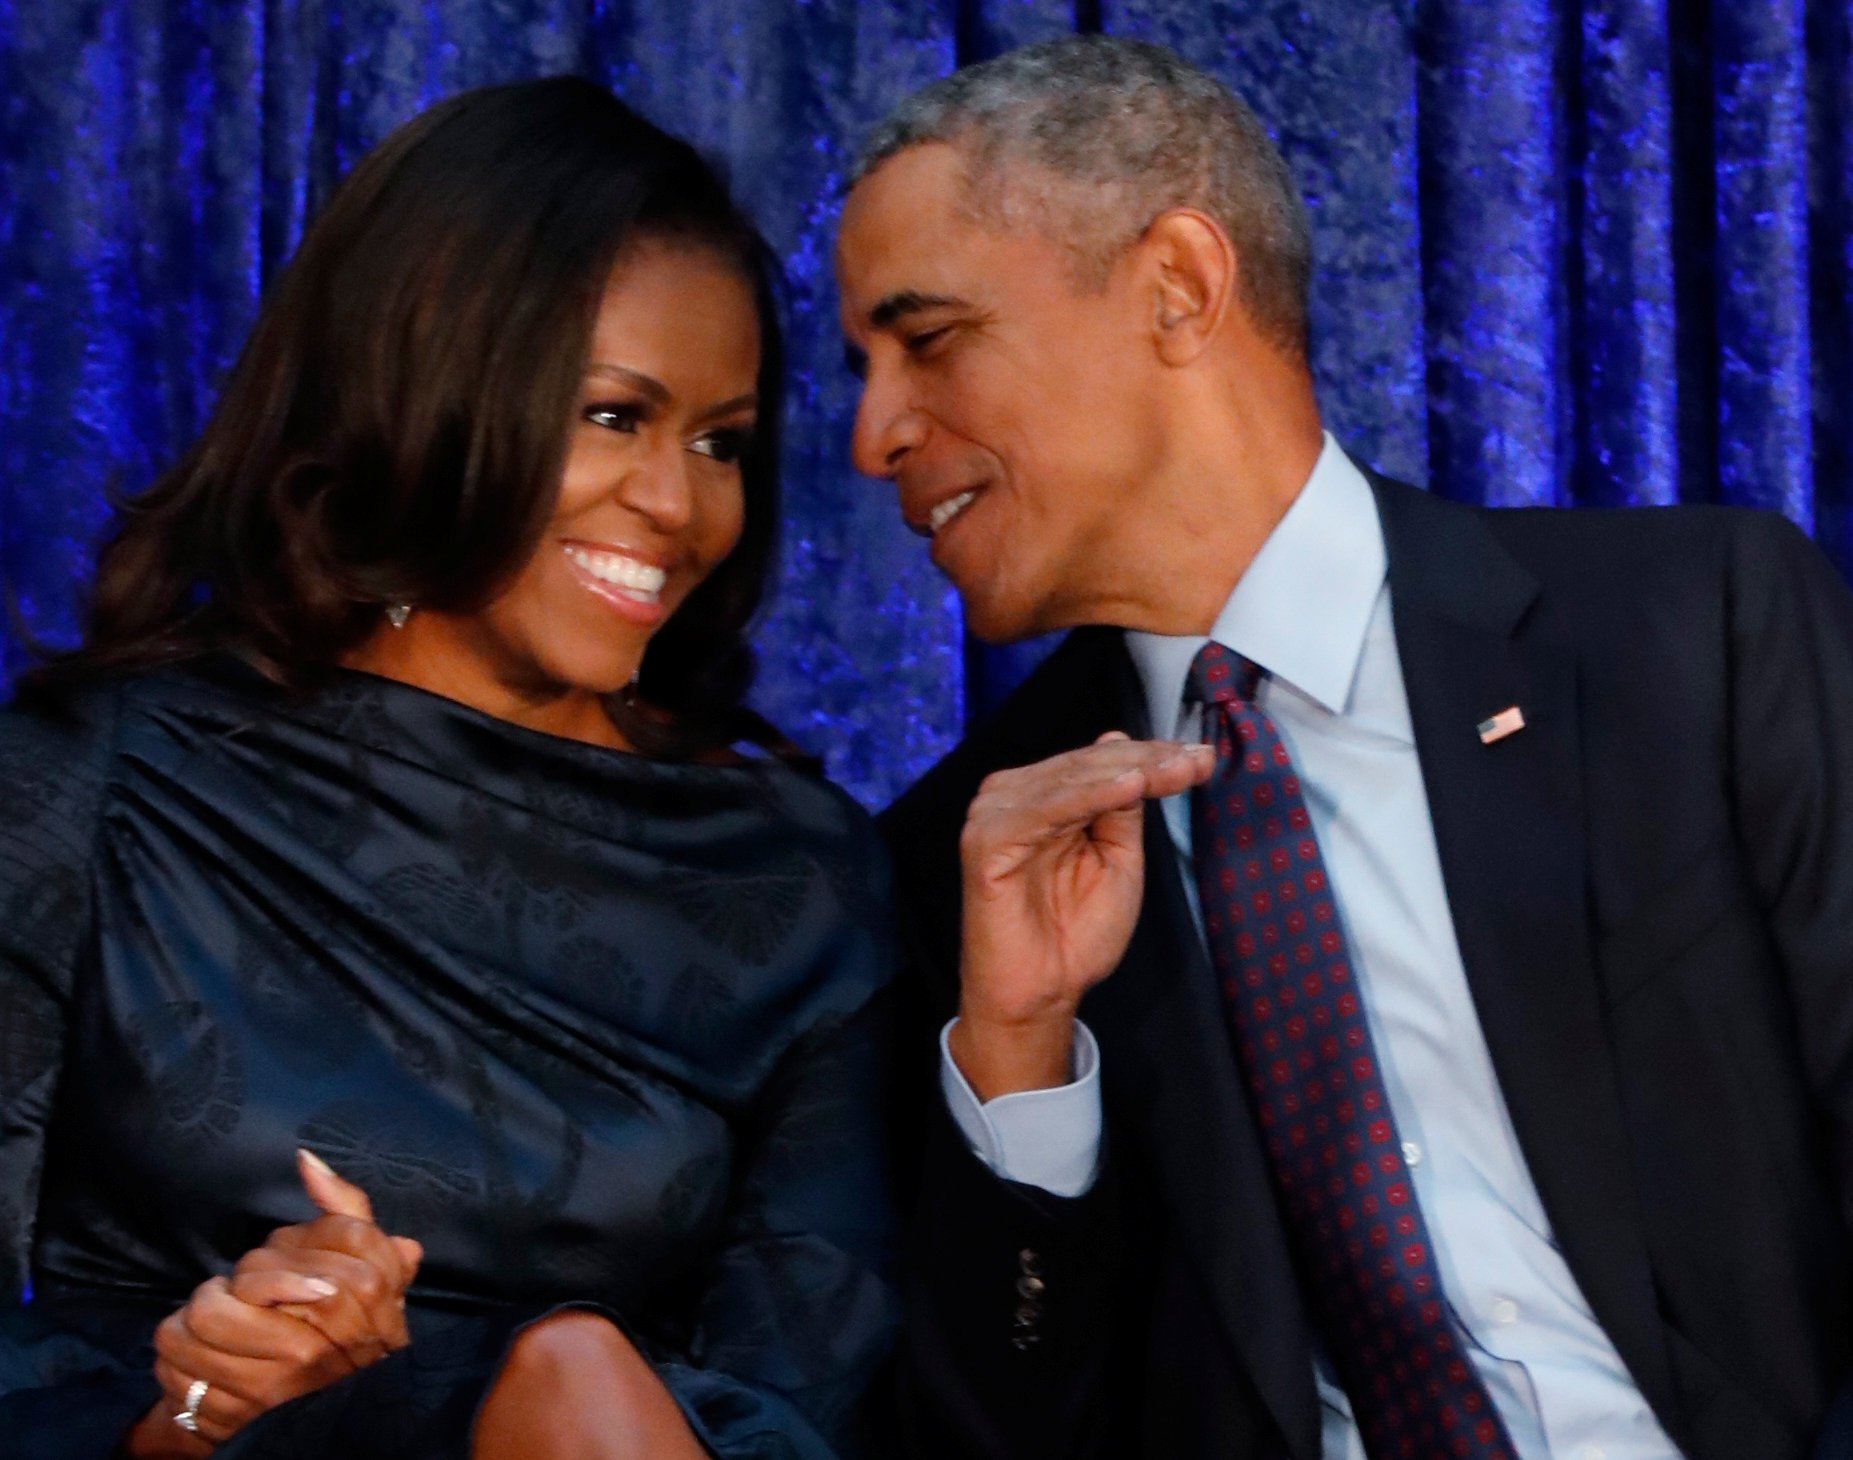 FILE PHOTO: Former U.S. President Barack Obama sits with former first lady Michelle Obama prior to the the unveiling of their portraits at the Smithsonian???s National Portrait Gallery in Washington, DC, U.S., February 12, 2018. REUTERS/Jim Bourg/File Photo